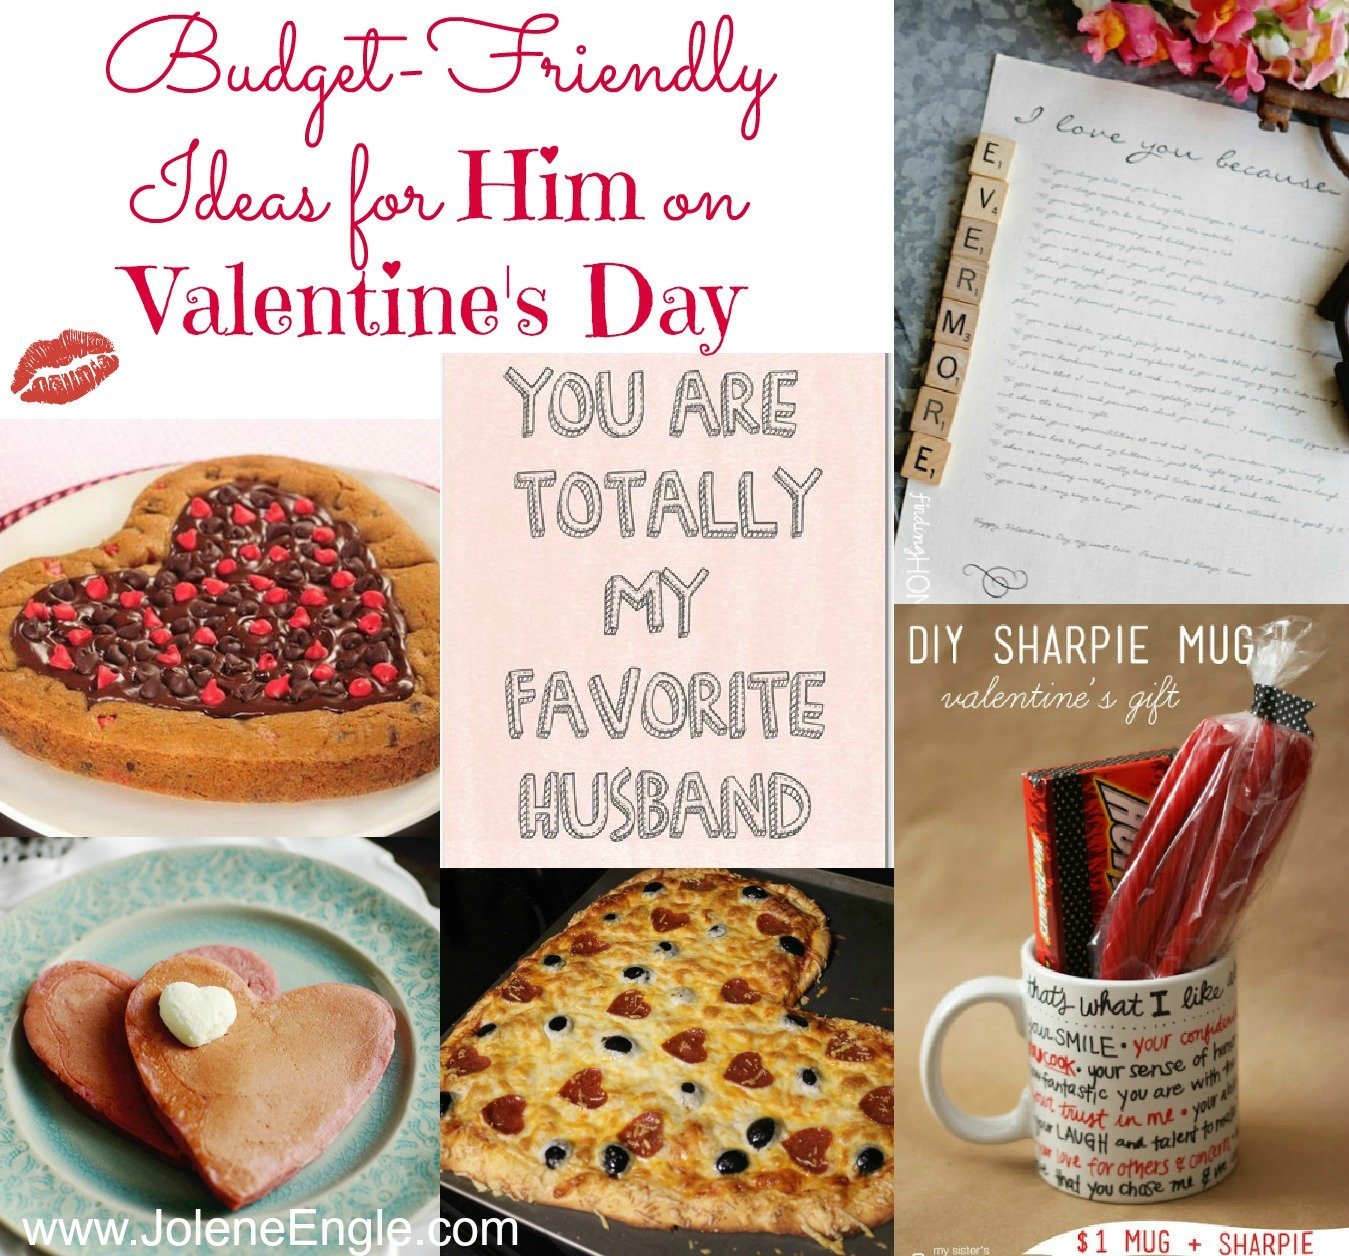 Budget-Friendly Ideas for Him on Valentine's Day